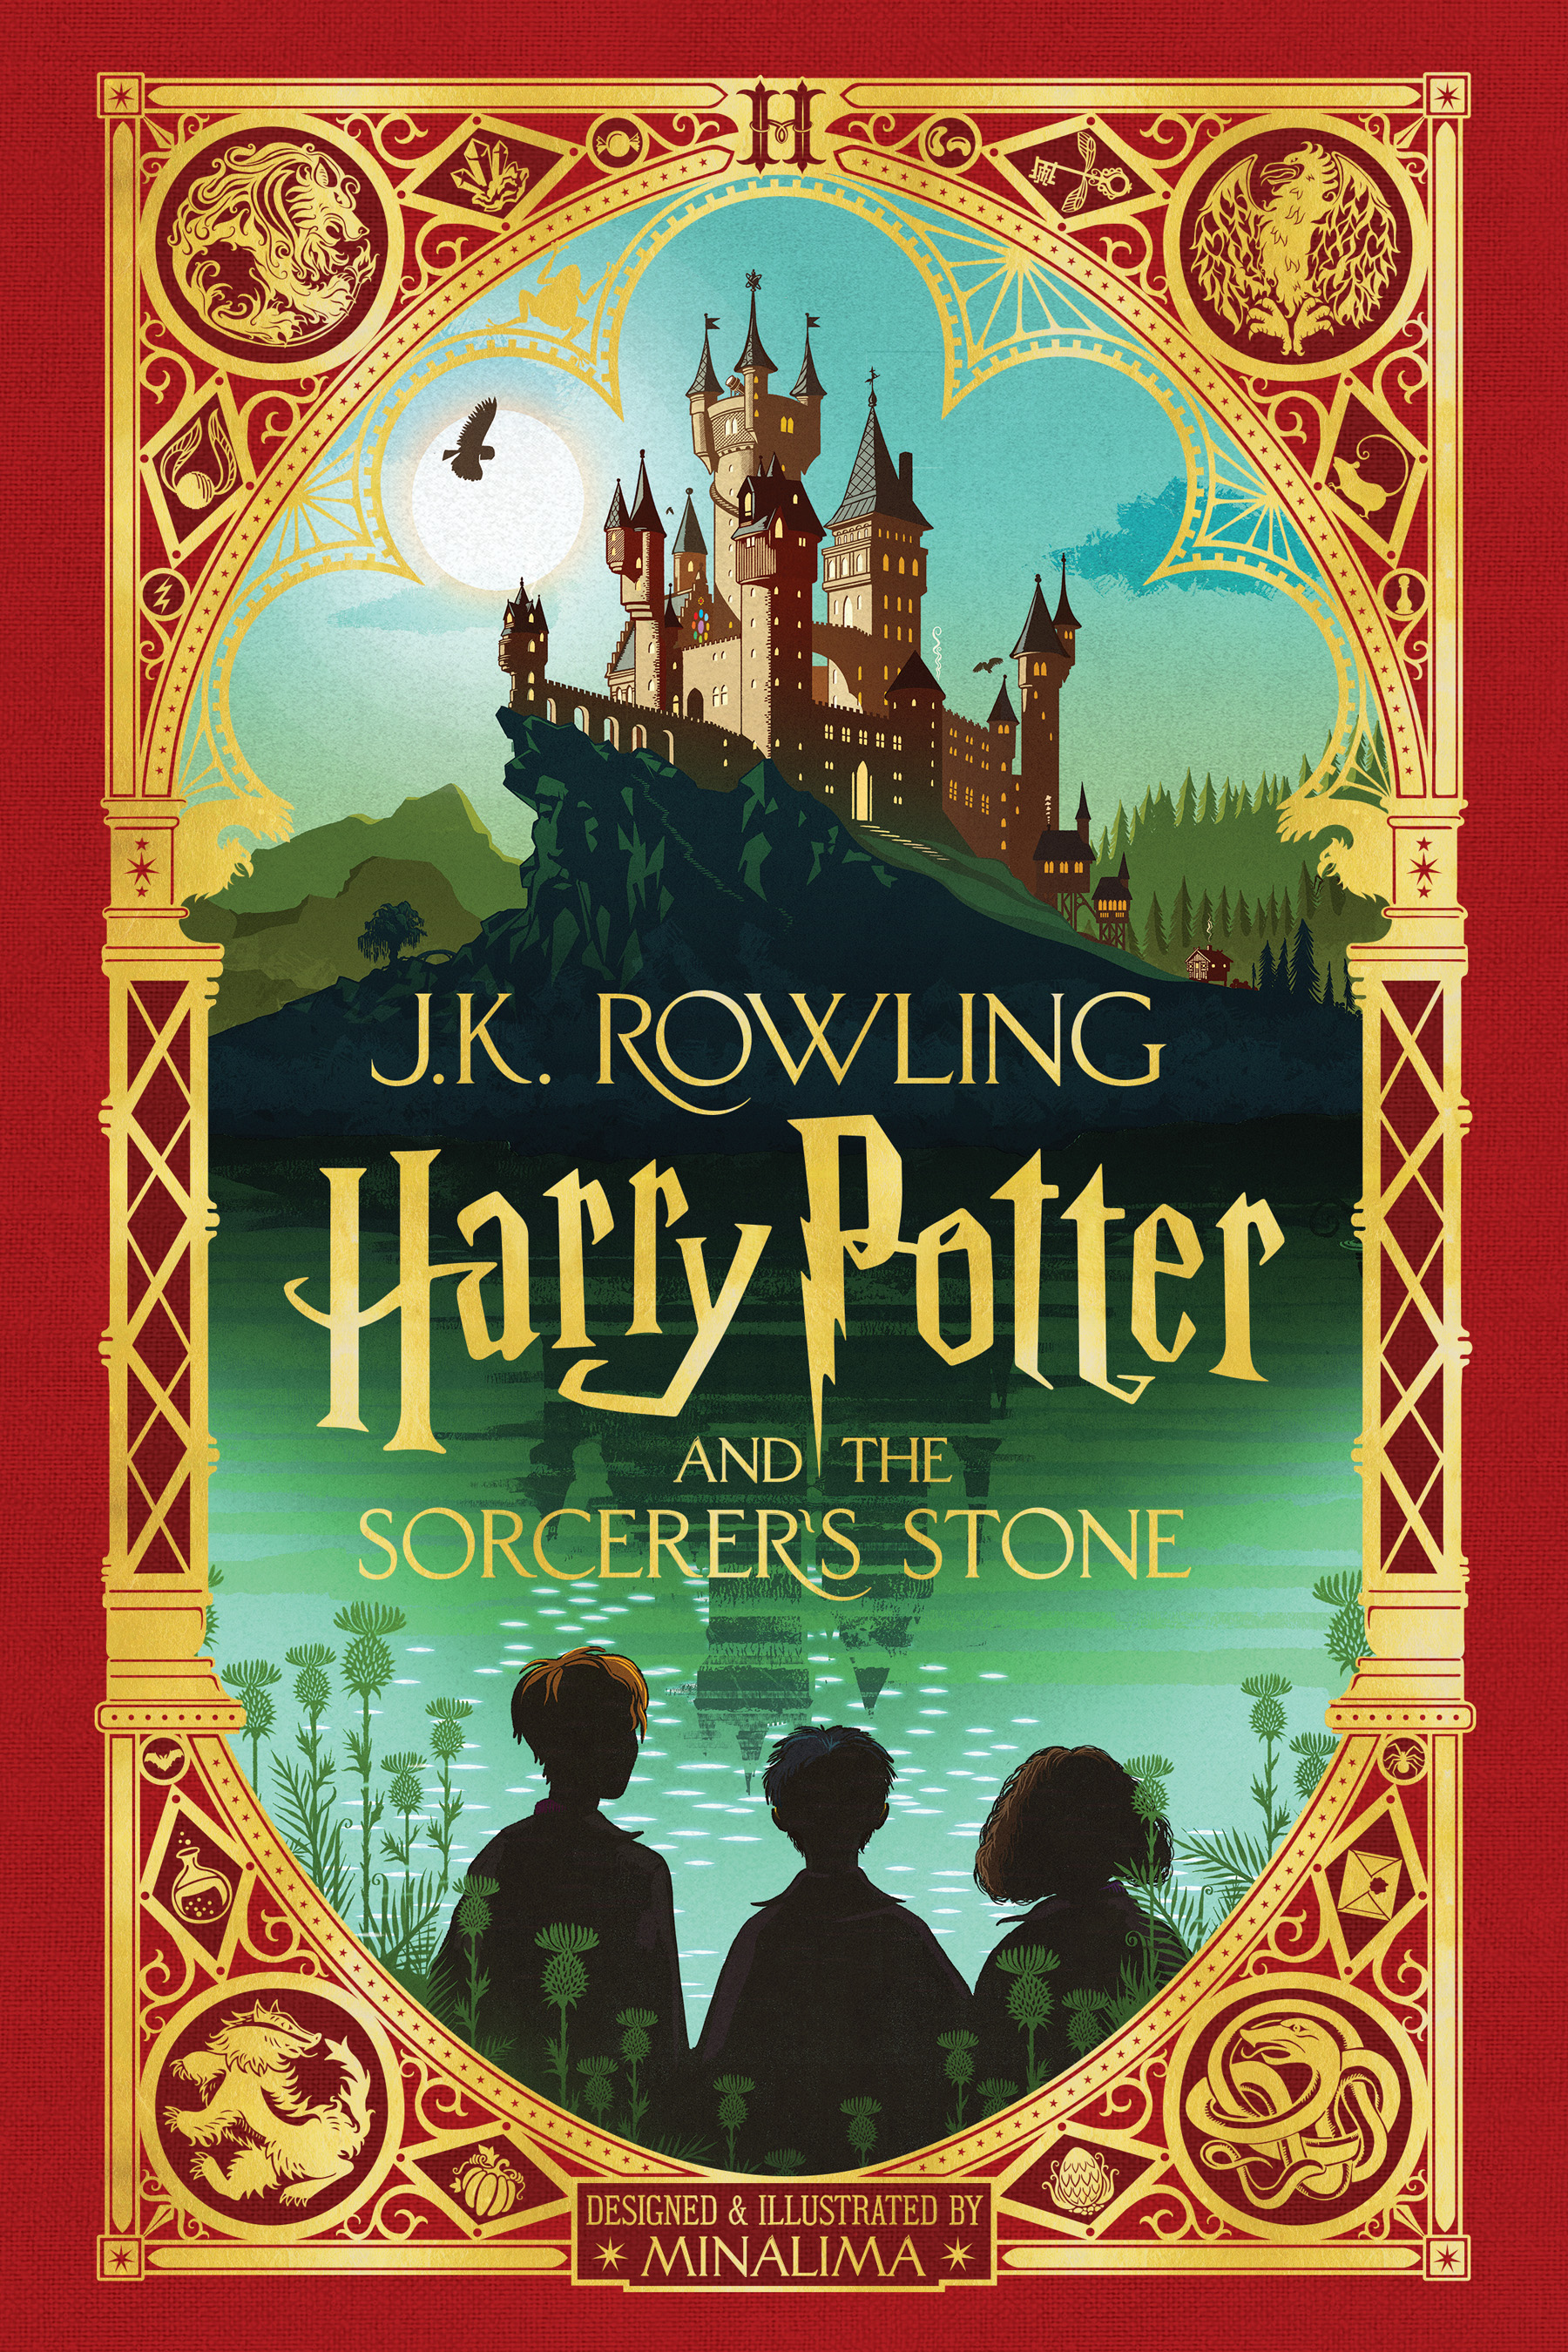 Harry Potter and the Sorcerer's Stone: MinaLima Edition (Harry Potter, Book 1) (Illustrated edition)